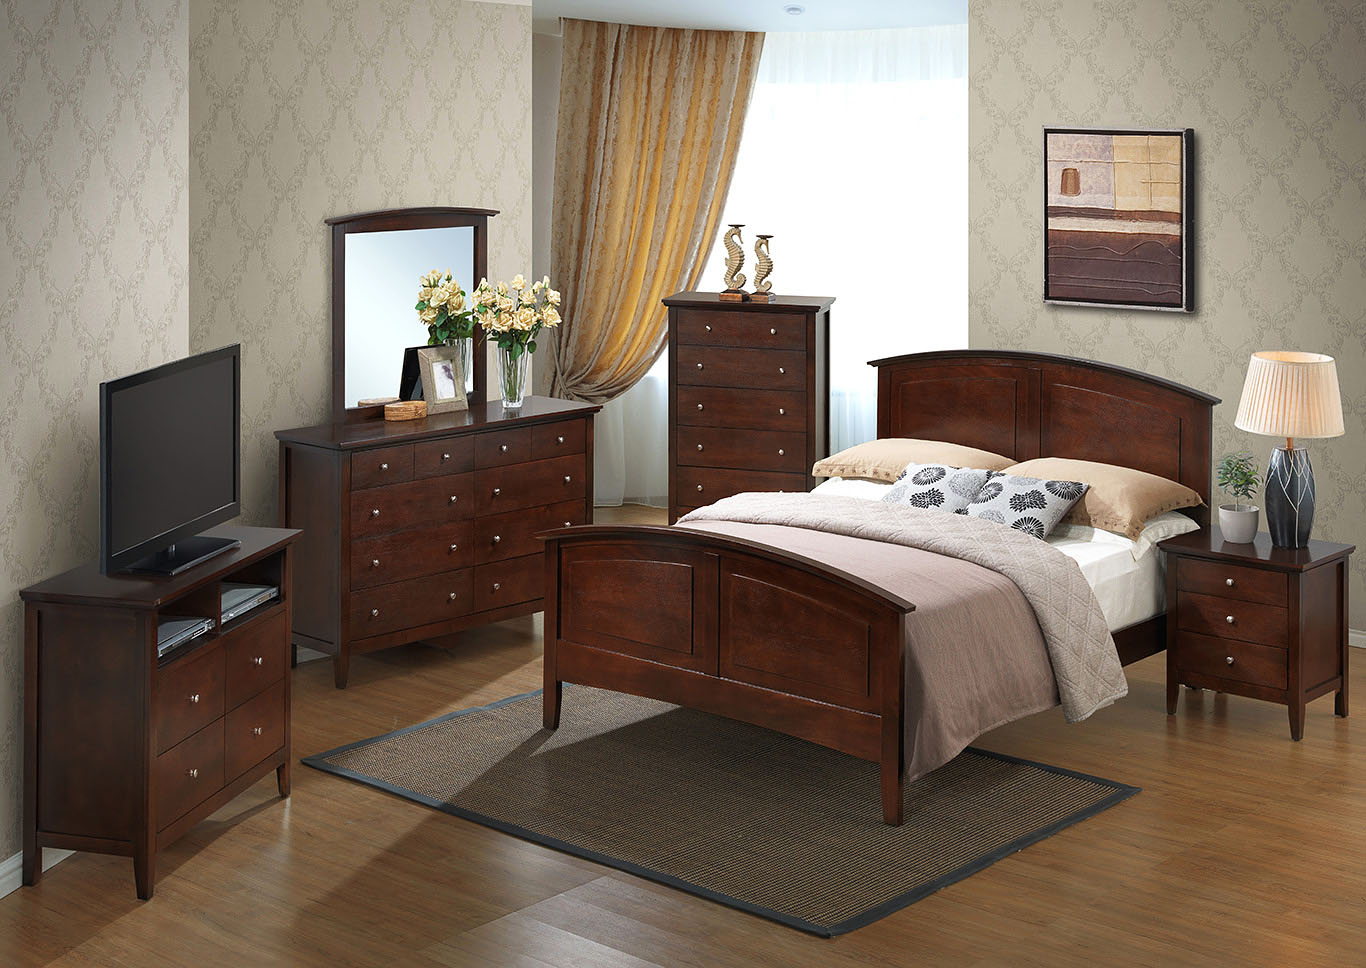 Cappuccino King Size Panel Bed,Glory Furniture